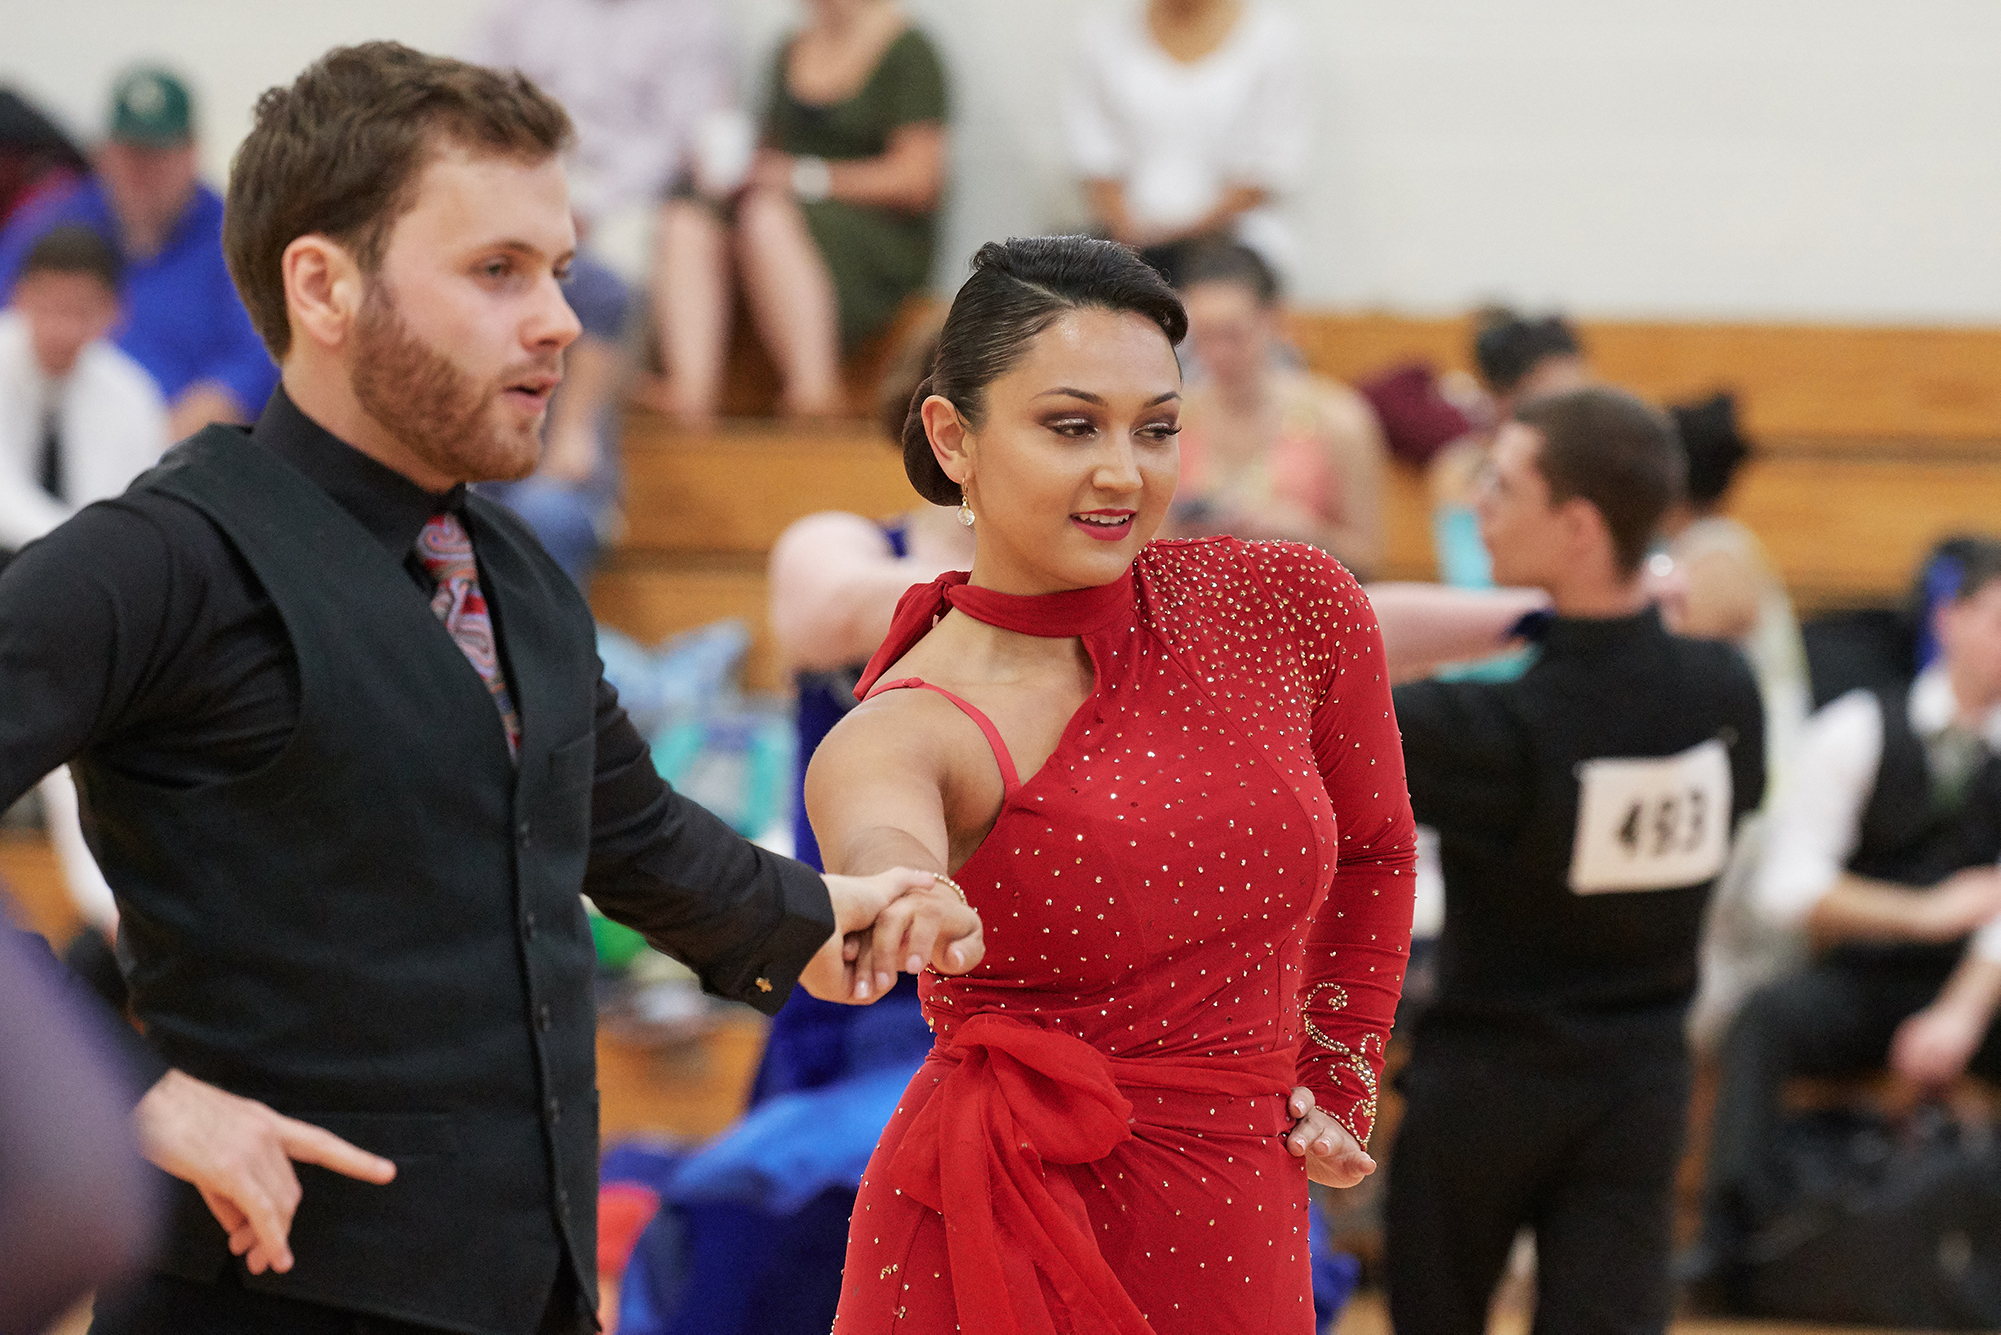 it takes two UConn Ballroom student members to dance this tango